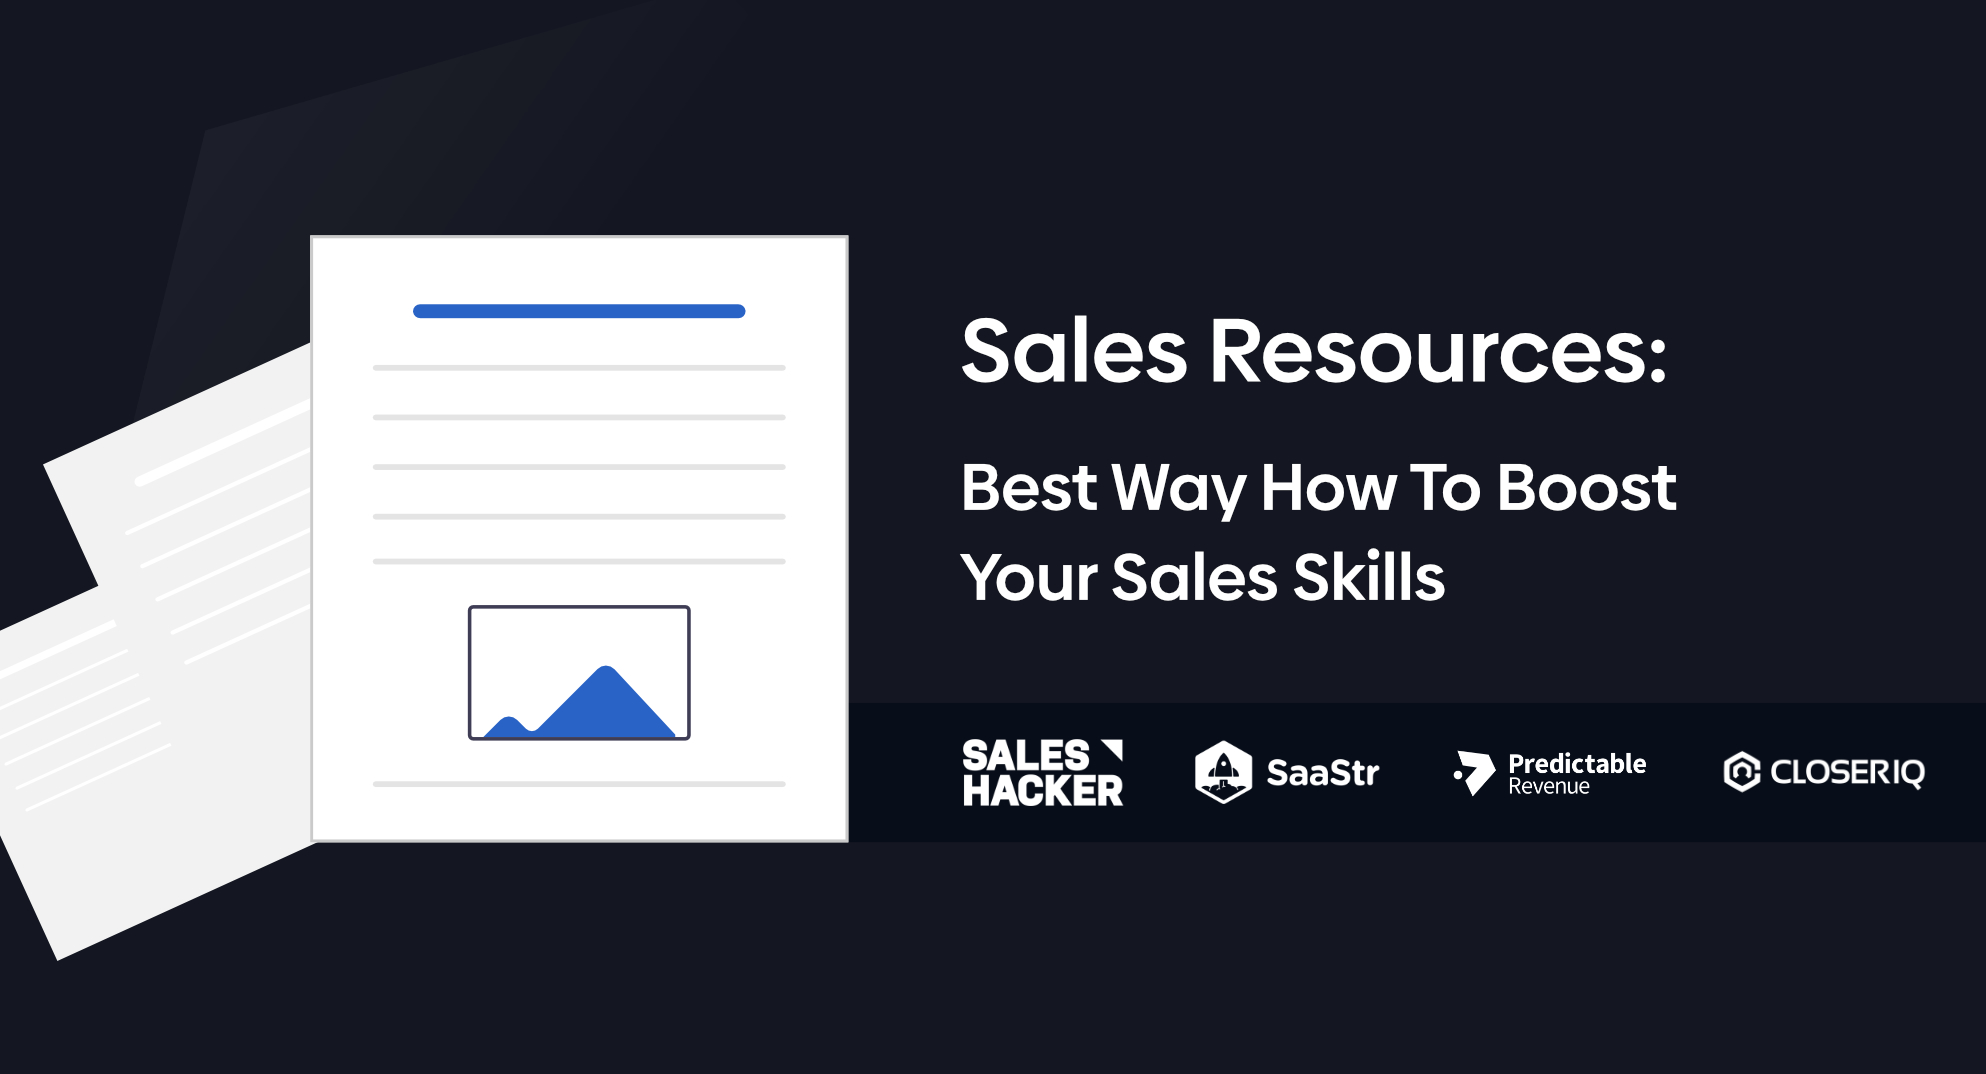 Top 10 B2B Sales Resources To Follow In 2021